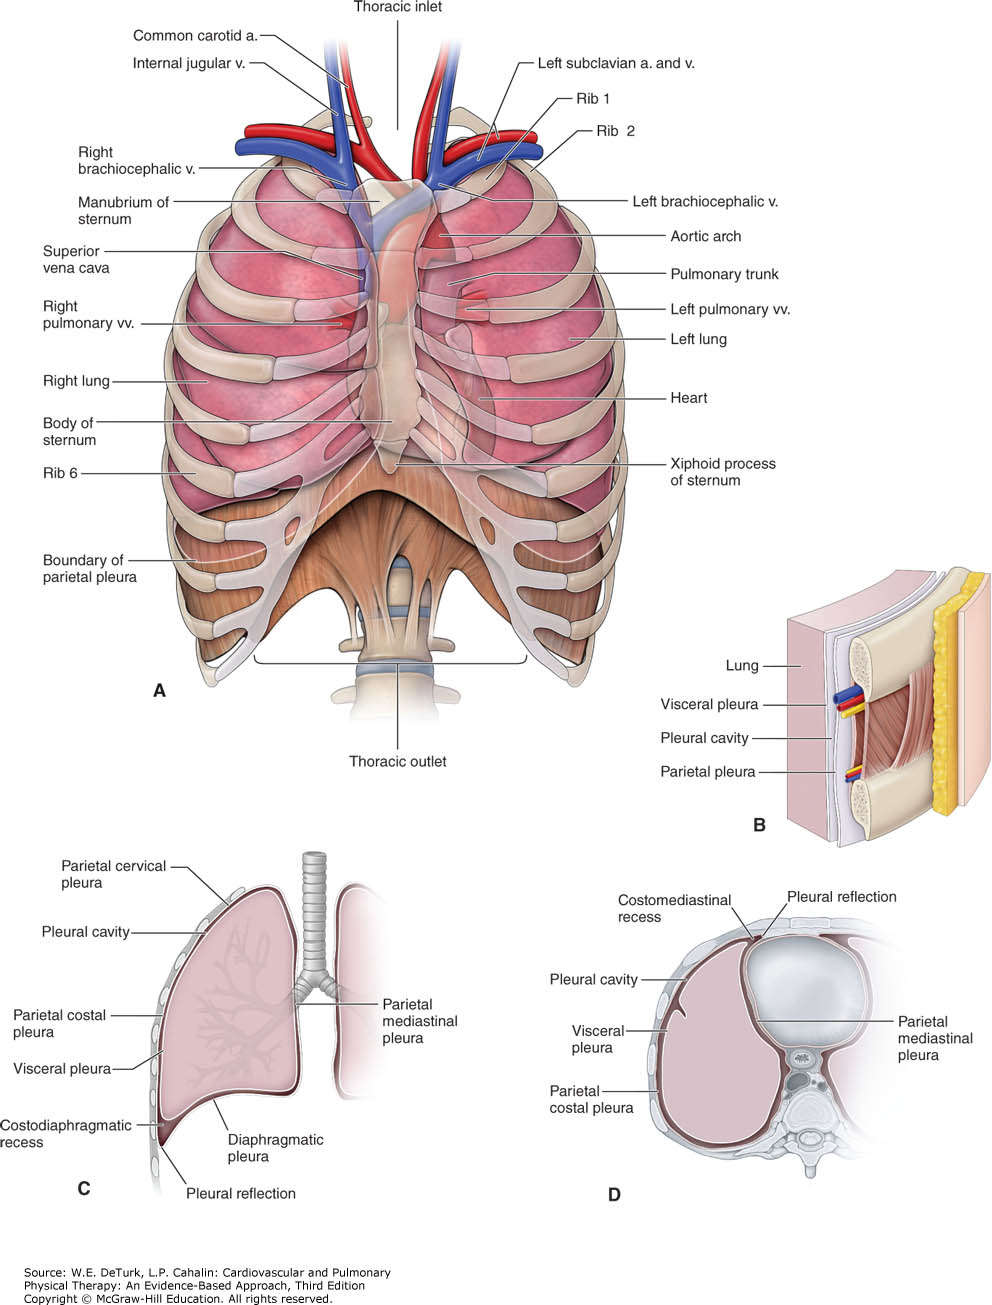 Thoracic cavity and lung anatomy in detail